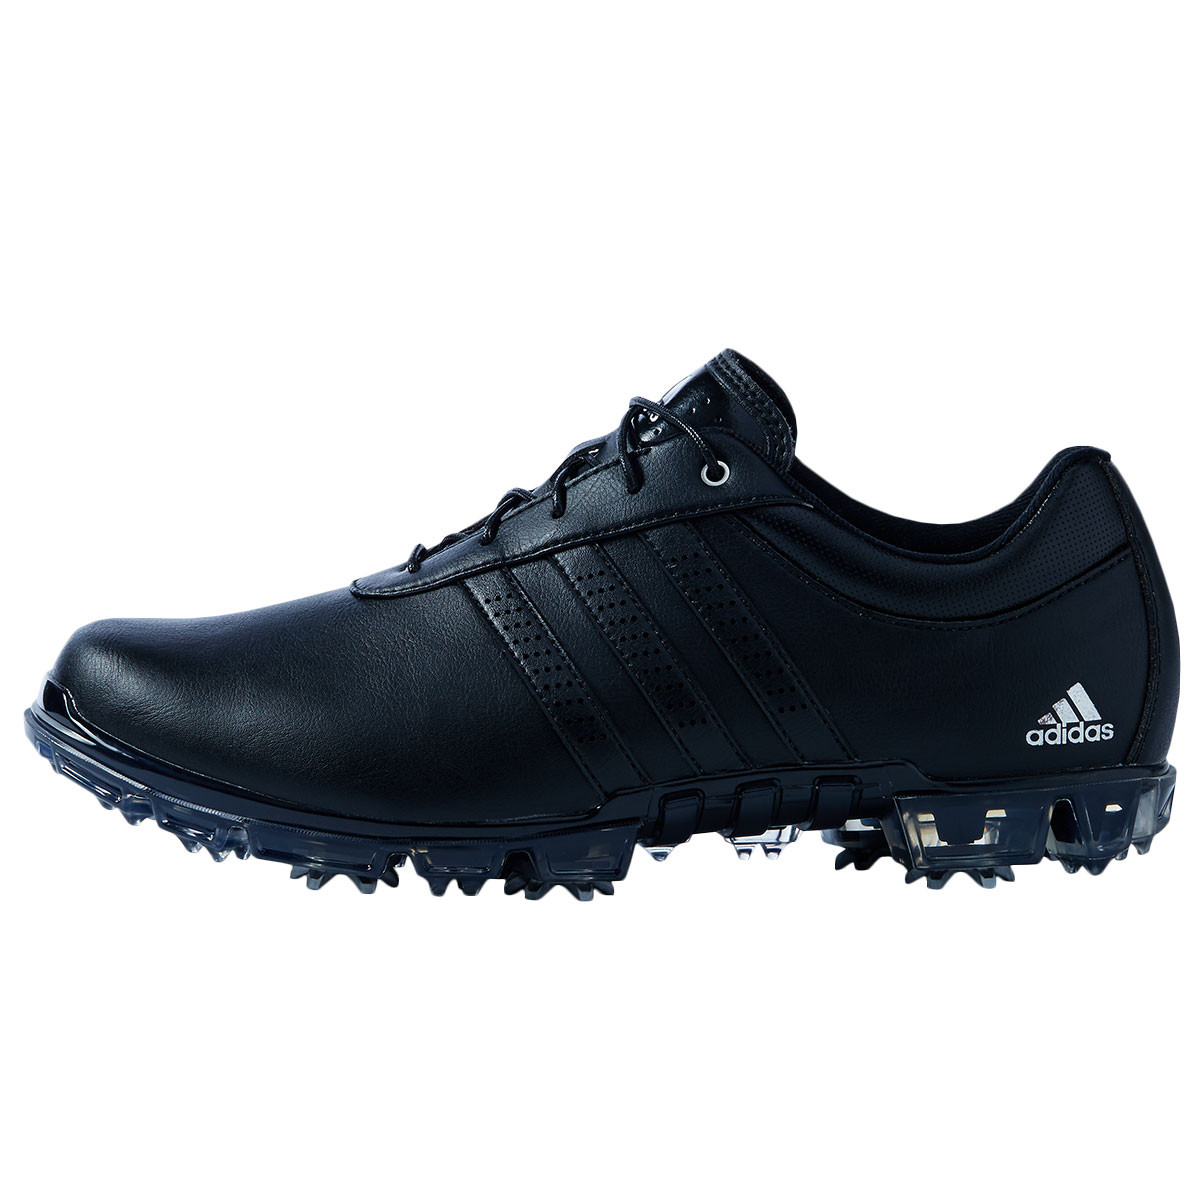 3284b1859d2 adidas Golf Mens Waterproof AdiPure Flex WD Golf Shoes